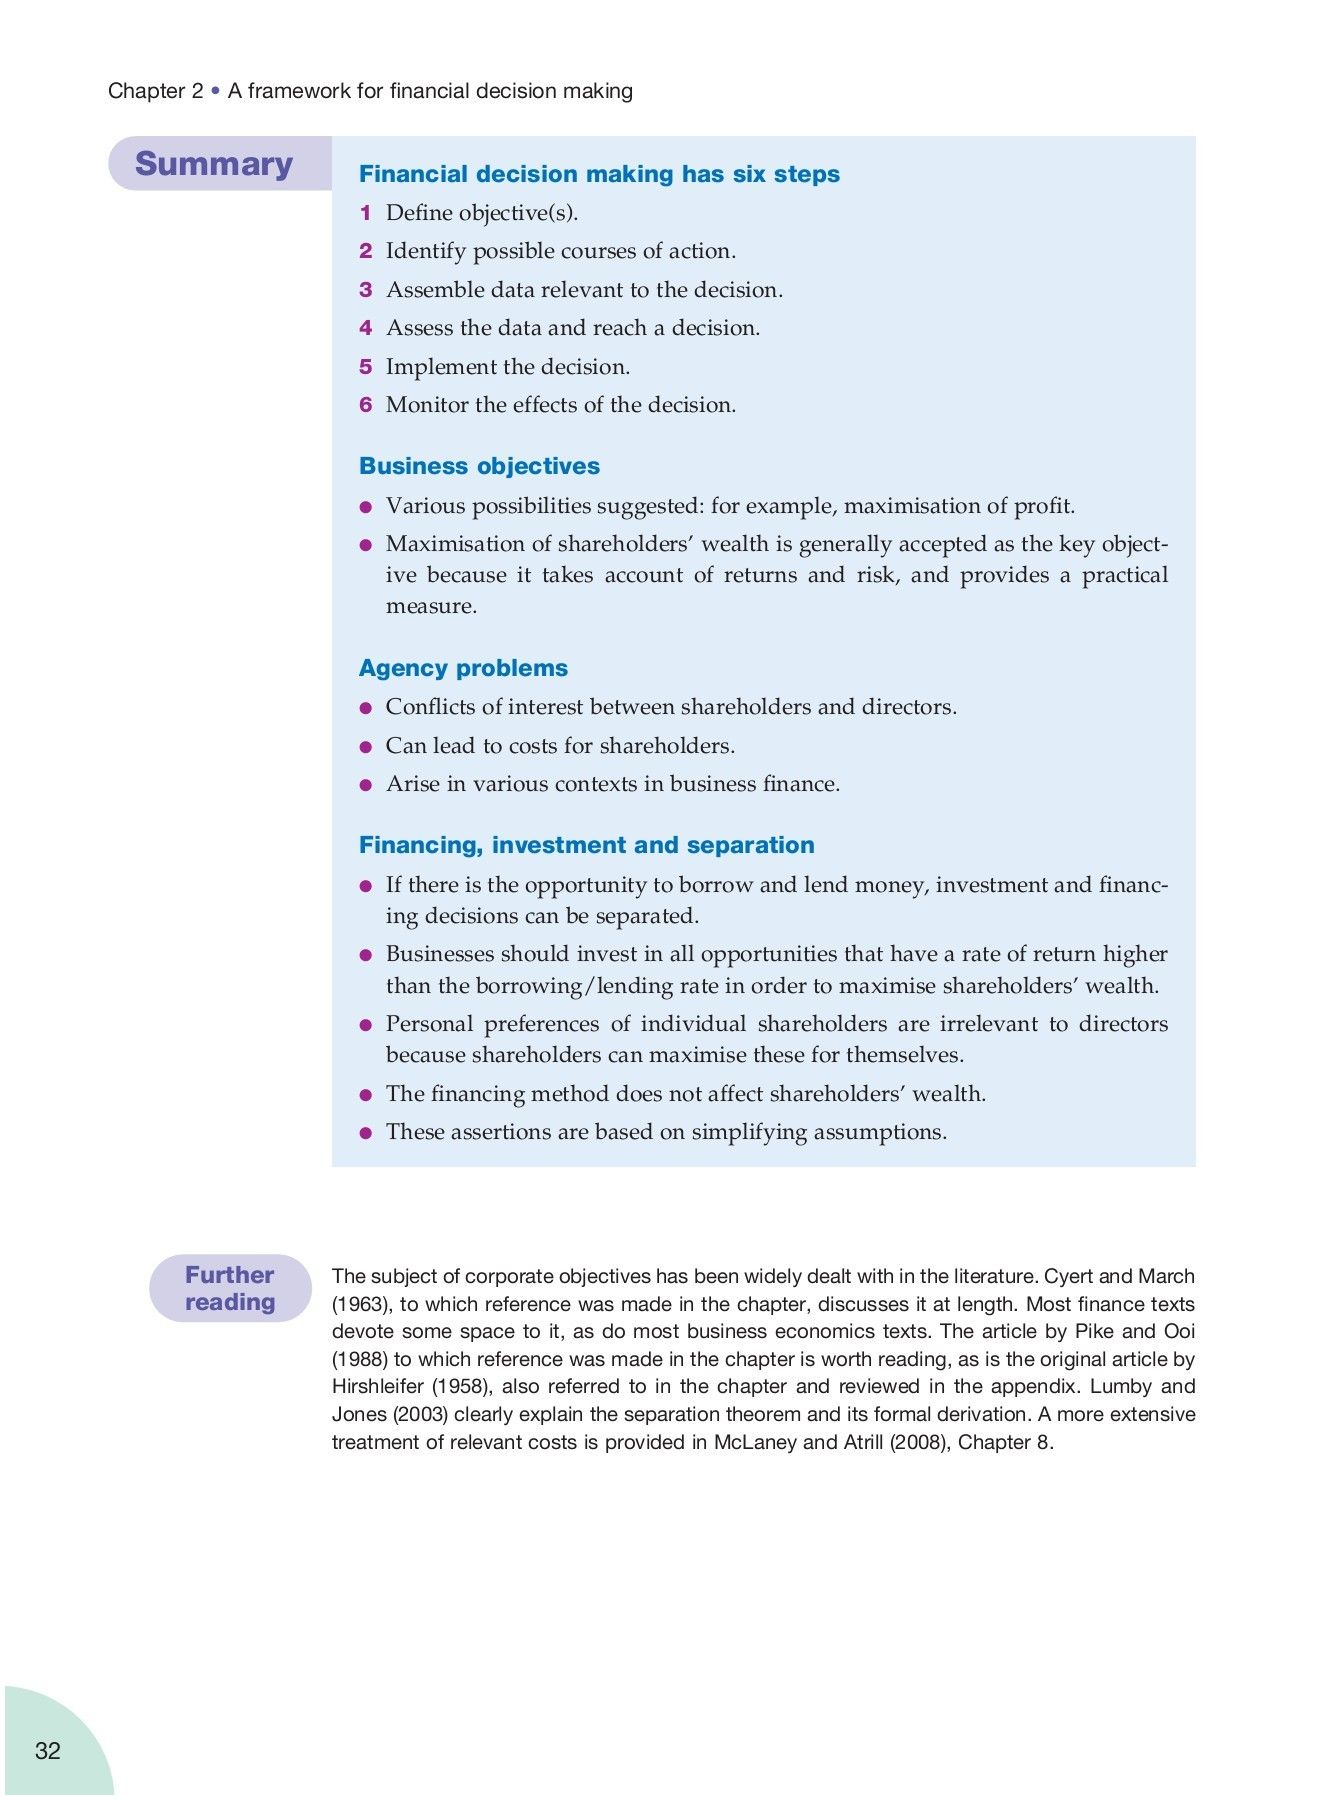 BUSINESS FINANCE THEORY AND PRACTICE Pages 51 100 Text Version